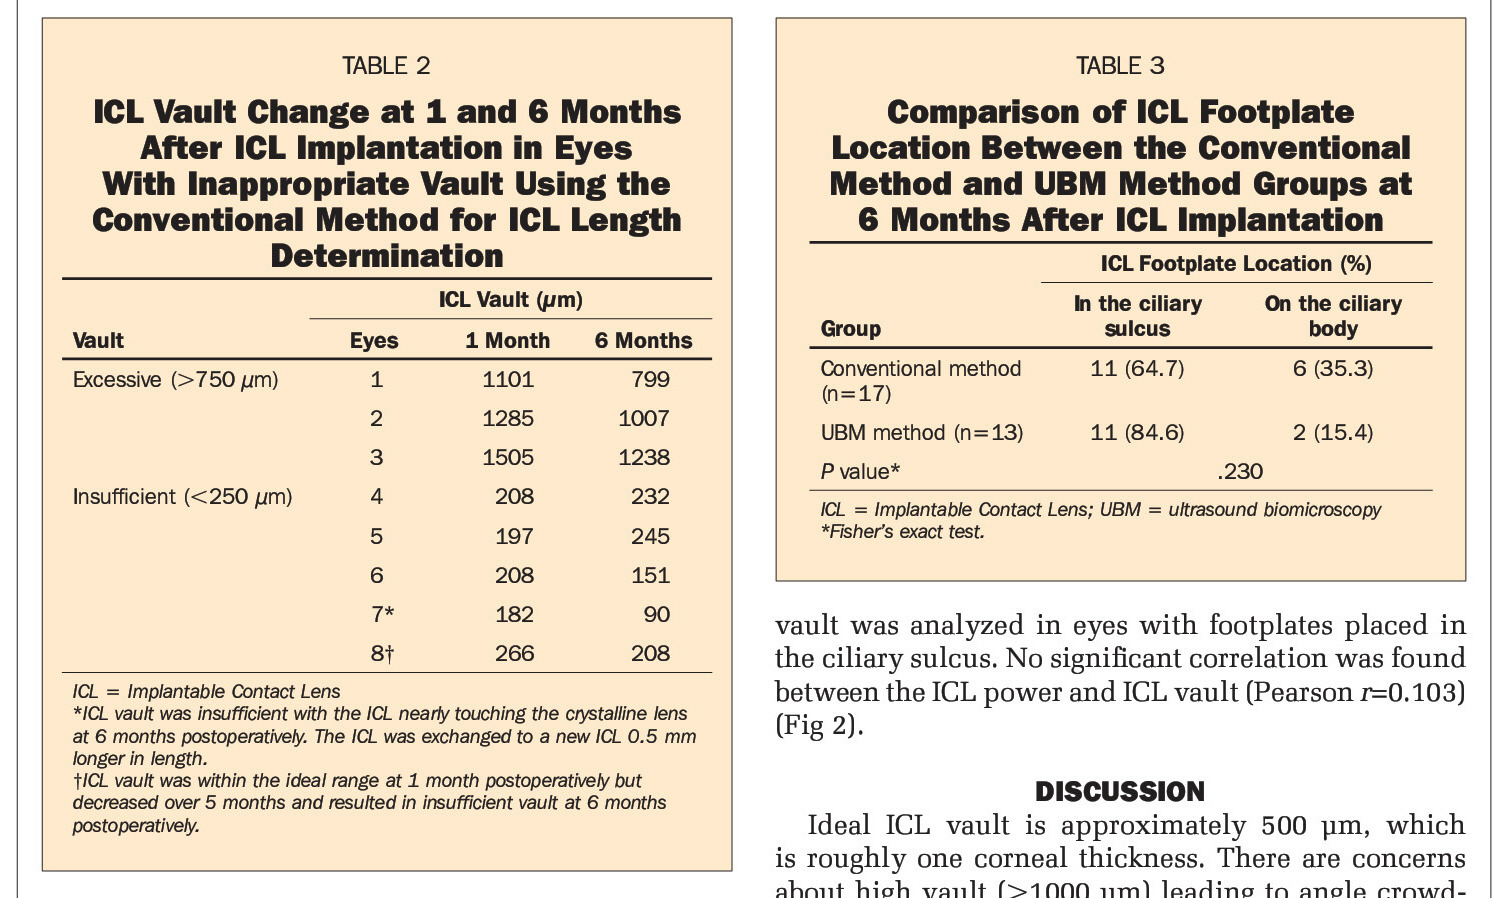 TABLE 2ICL Vault Change at 1 and 6 Months After ICL Implantation in Eyes With Inappropriate Vault Using the Conventional Method for ICL Length DeterminationTABLE 3Comparison of ICL Footplate Location Between the Conventional Method and UBM Method Groups at ß Months After ICL Implantation